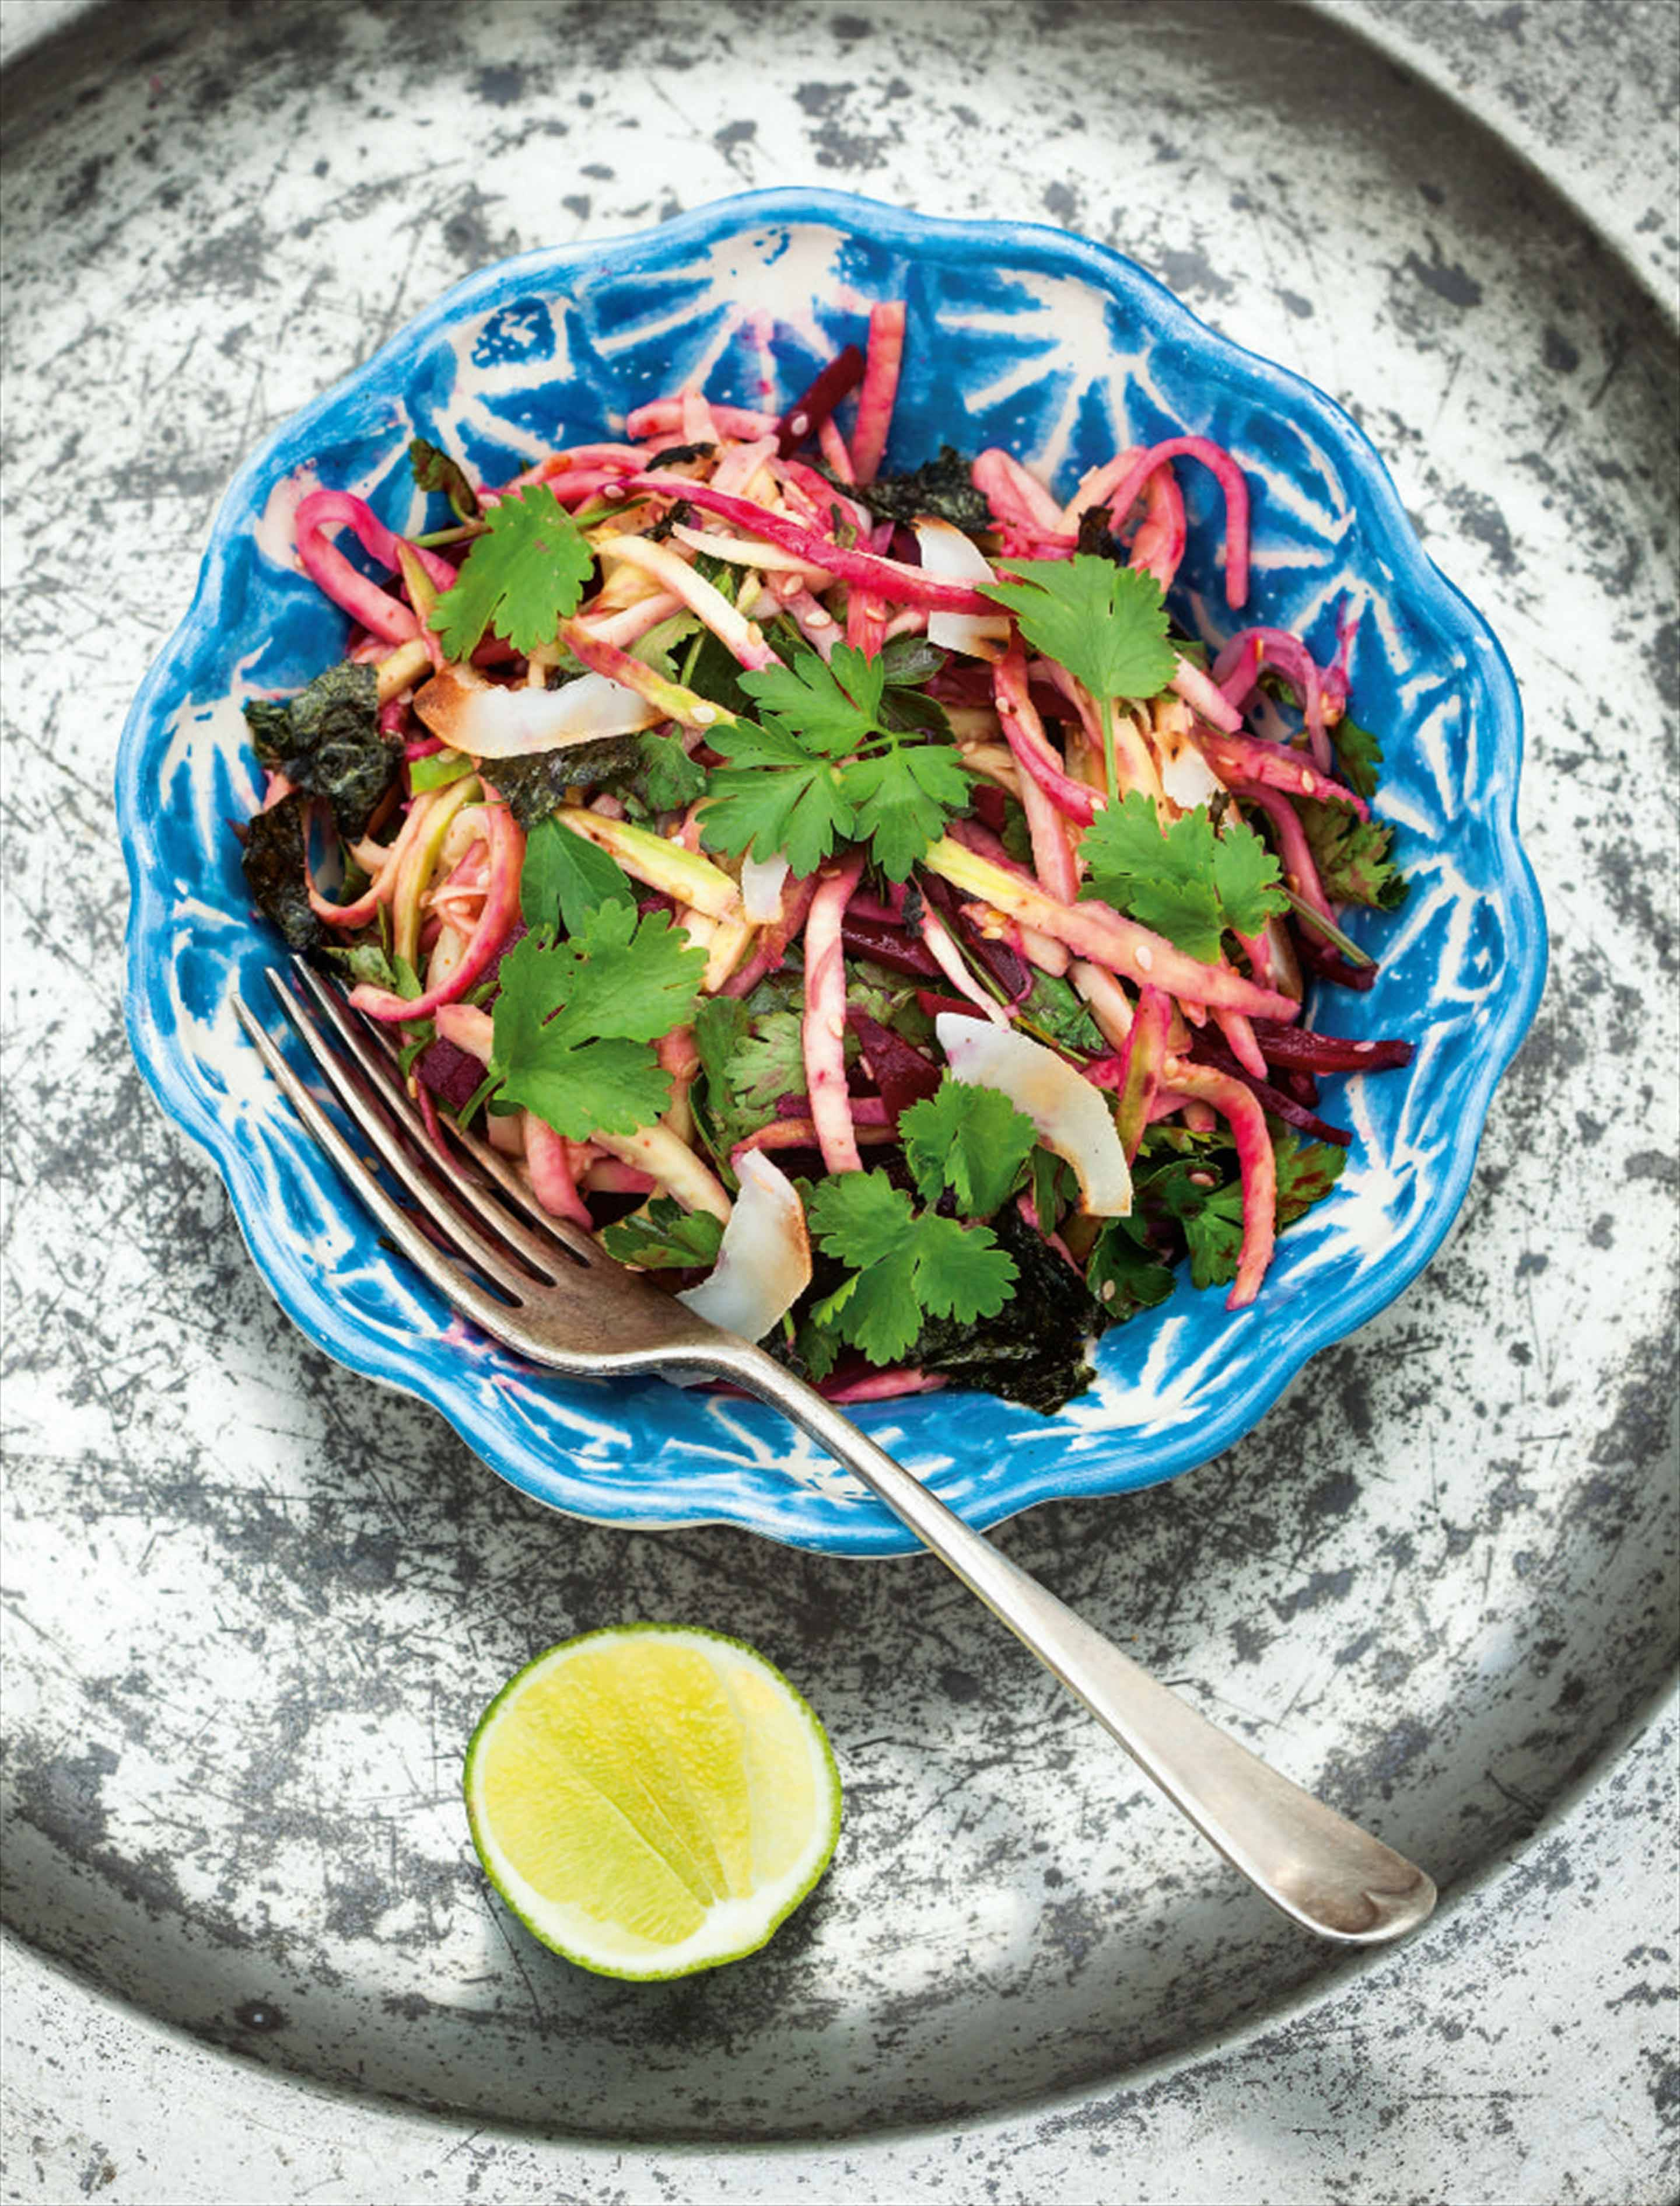 Beetroot, parsley and green mango salad